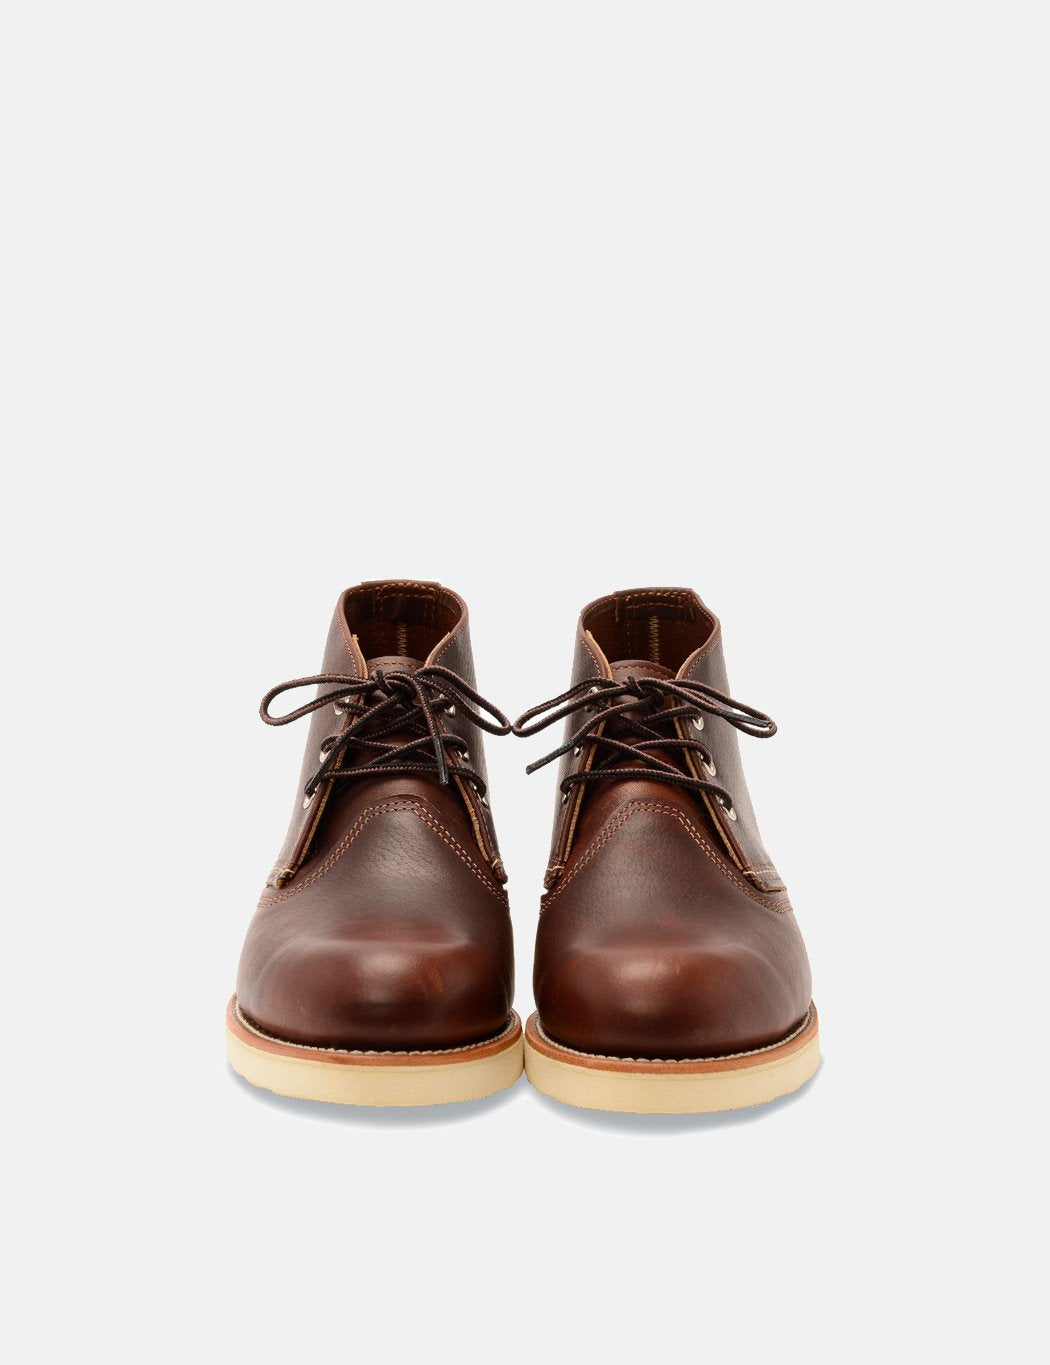 Red Wing Chukkastiefel (3141) - Braun